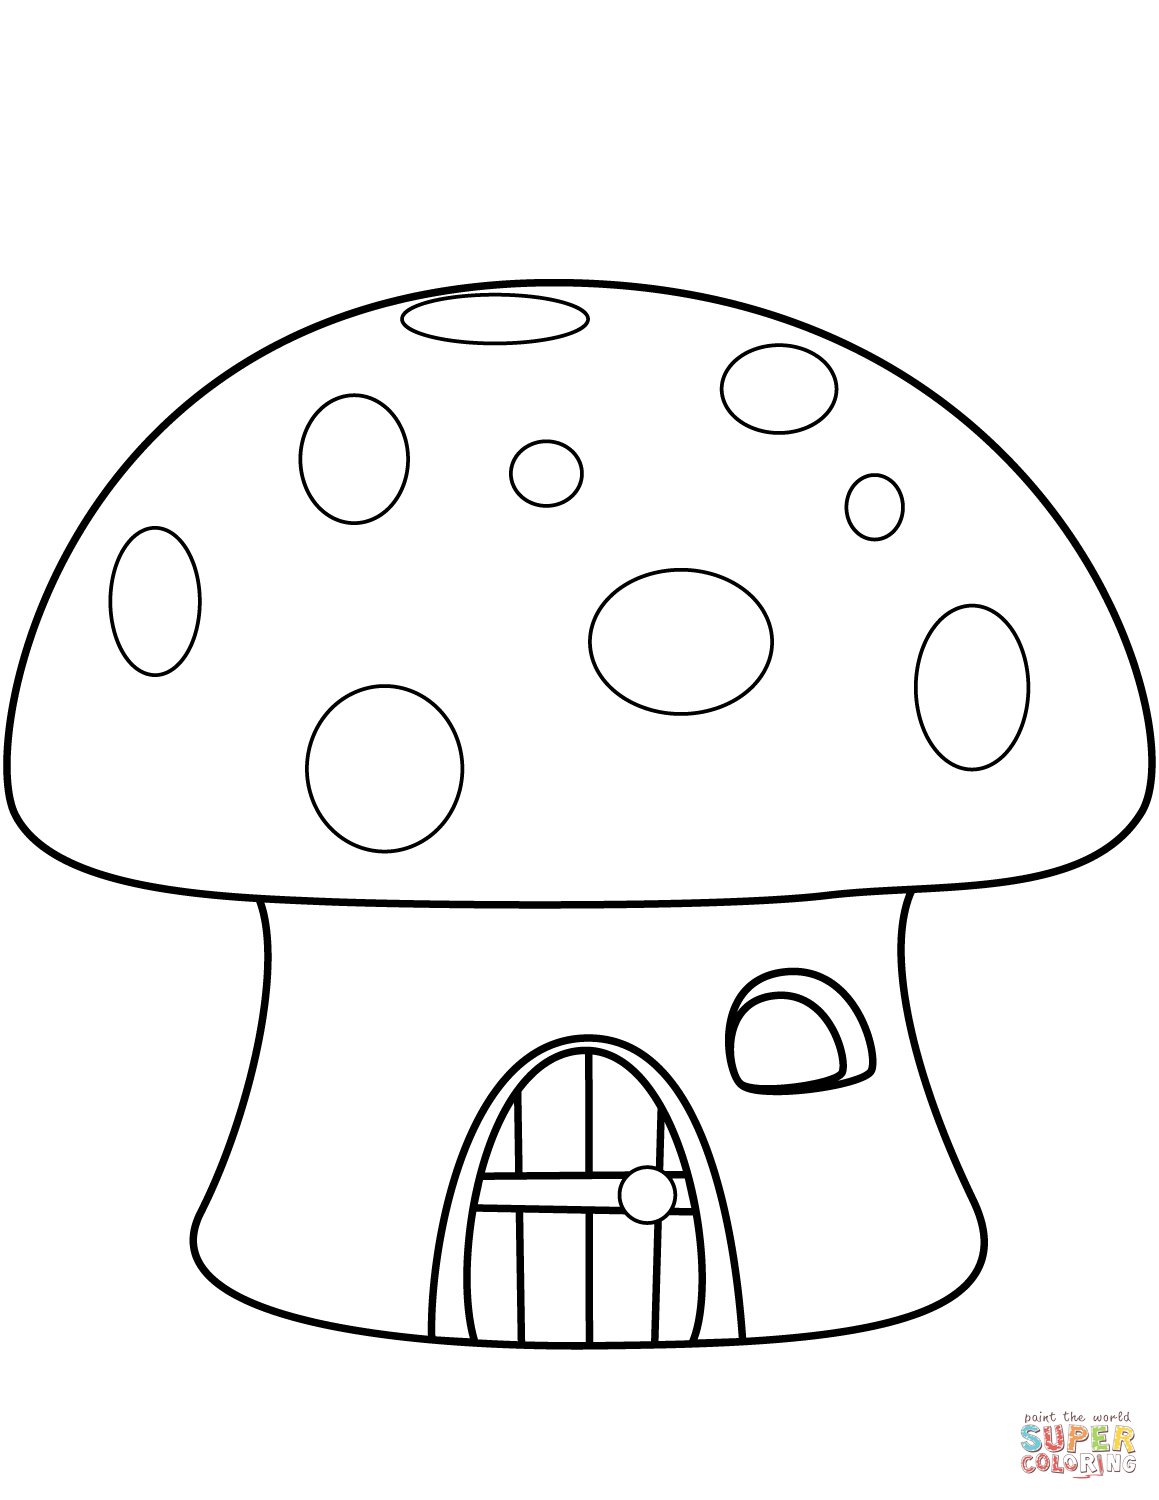 Mushroom House Coloring Page | Free Printable Coloring Pages - Free Printable Mushroom Coloring Pages